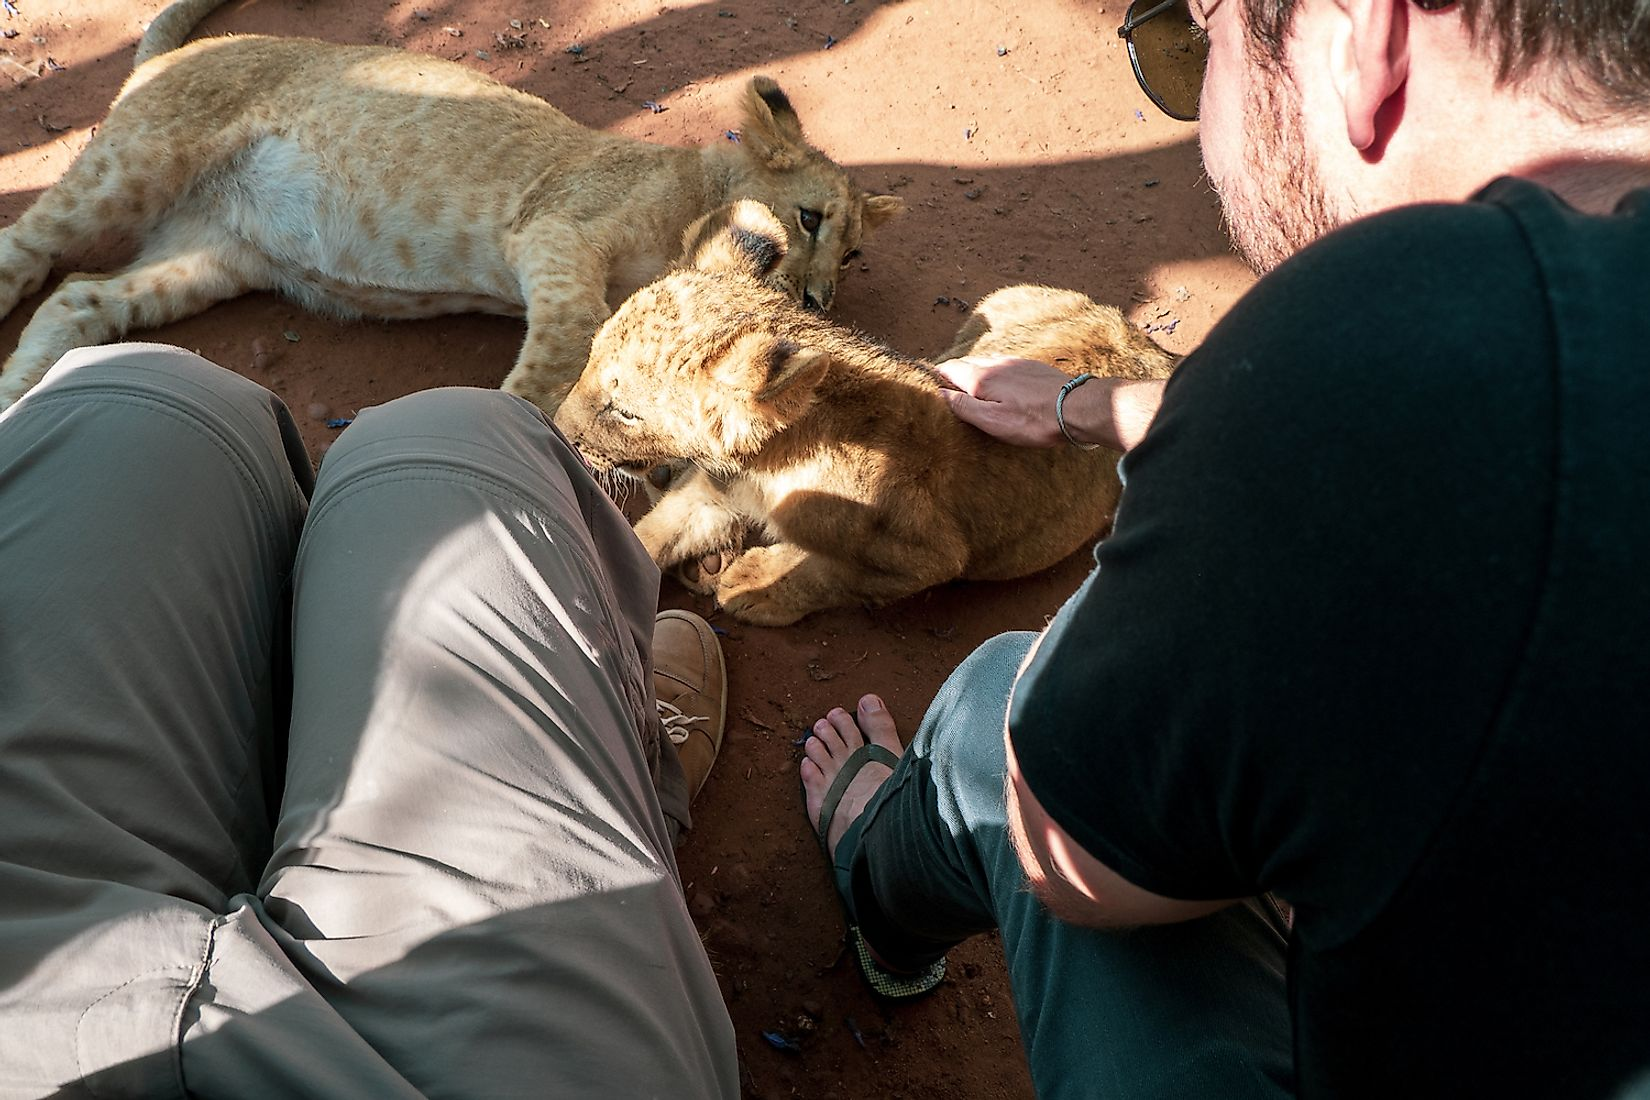 Tourists petting lion cubs at a breeding station in South Africa. Lions in such captive conditions are often exploited throughout their lifetime for commercial gains. Image credit: schusterbauer.com/Shutterstock.com